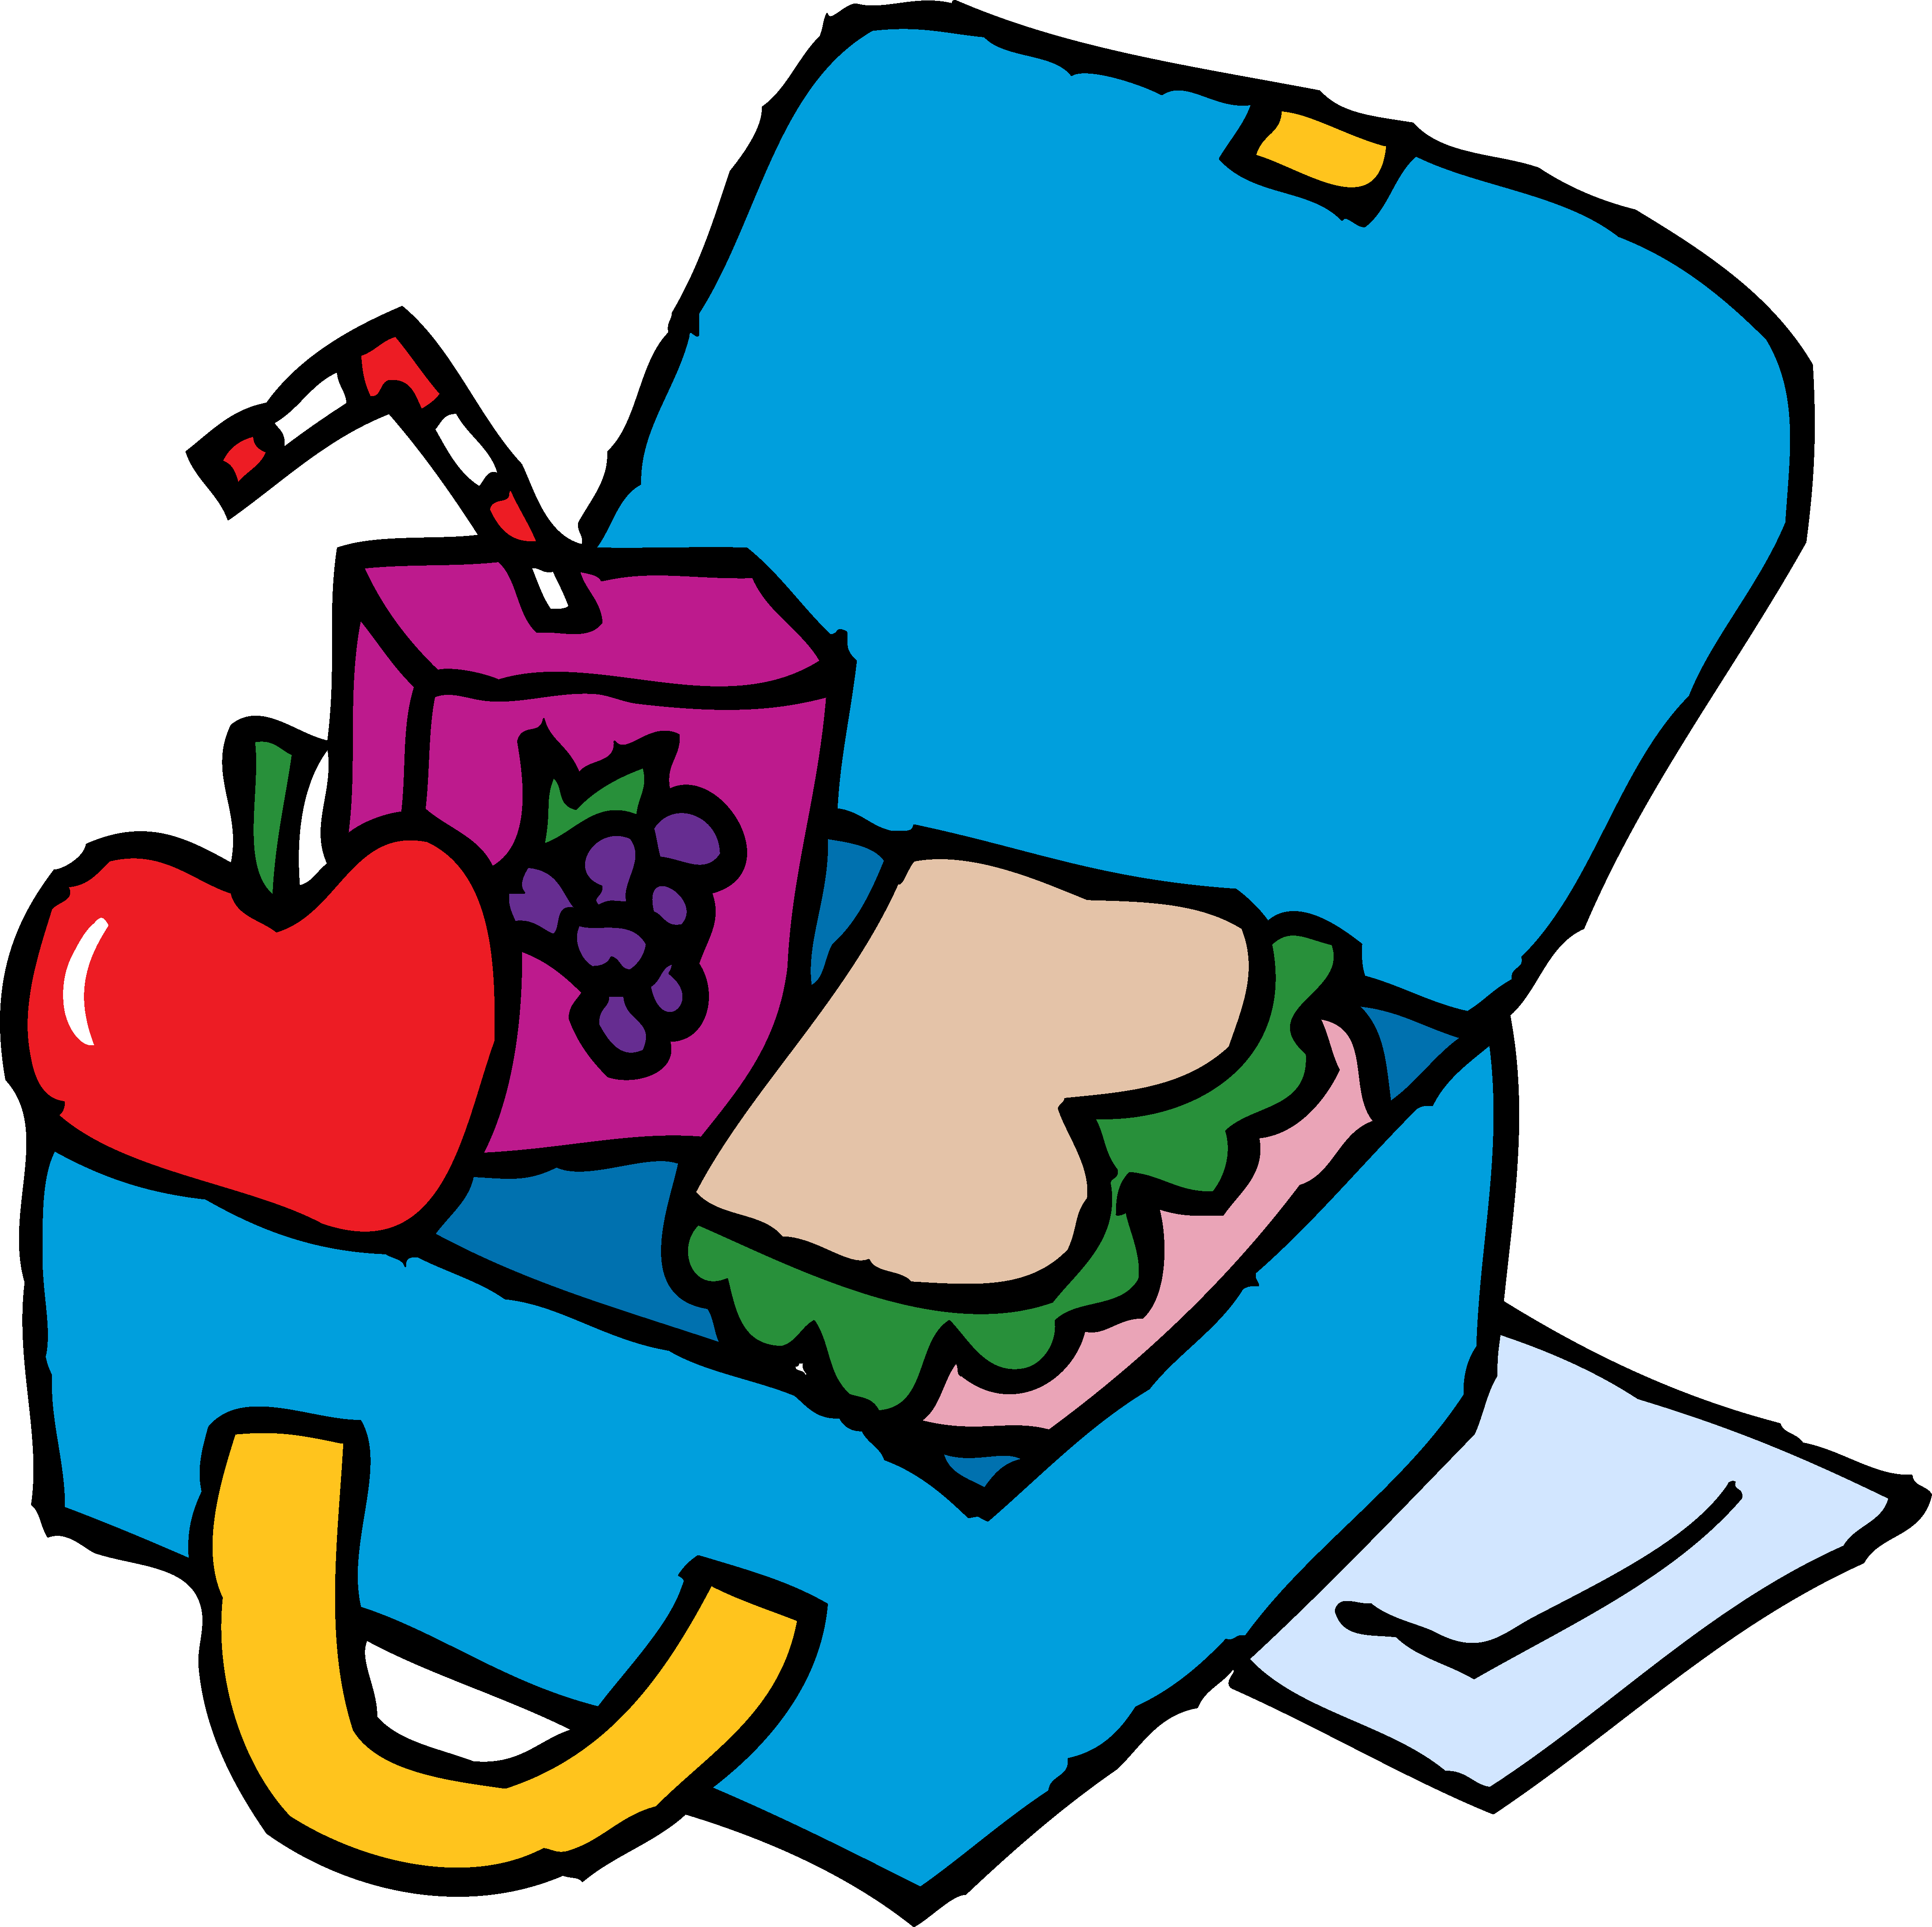 image royalty free library Lunchbox clipart. Snack lunchtime free on